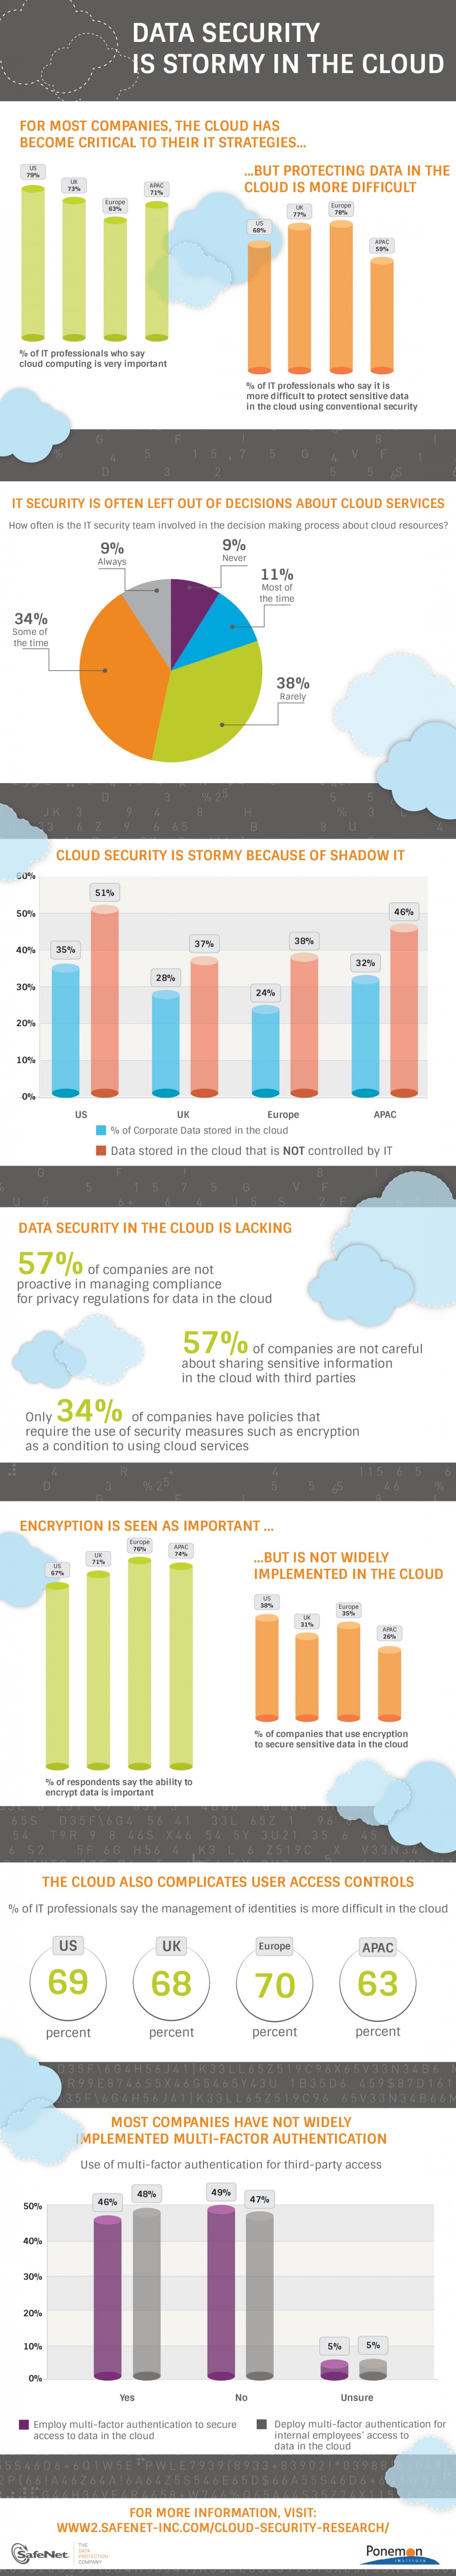 """data locations and security issues in cloud computing Cloud computing has """"unique attributes that require risk assessment in areas such as data integrity, recovery and privacy, and an evaluation of legal issues in areas such as e-discovery."""